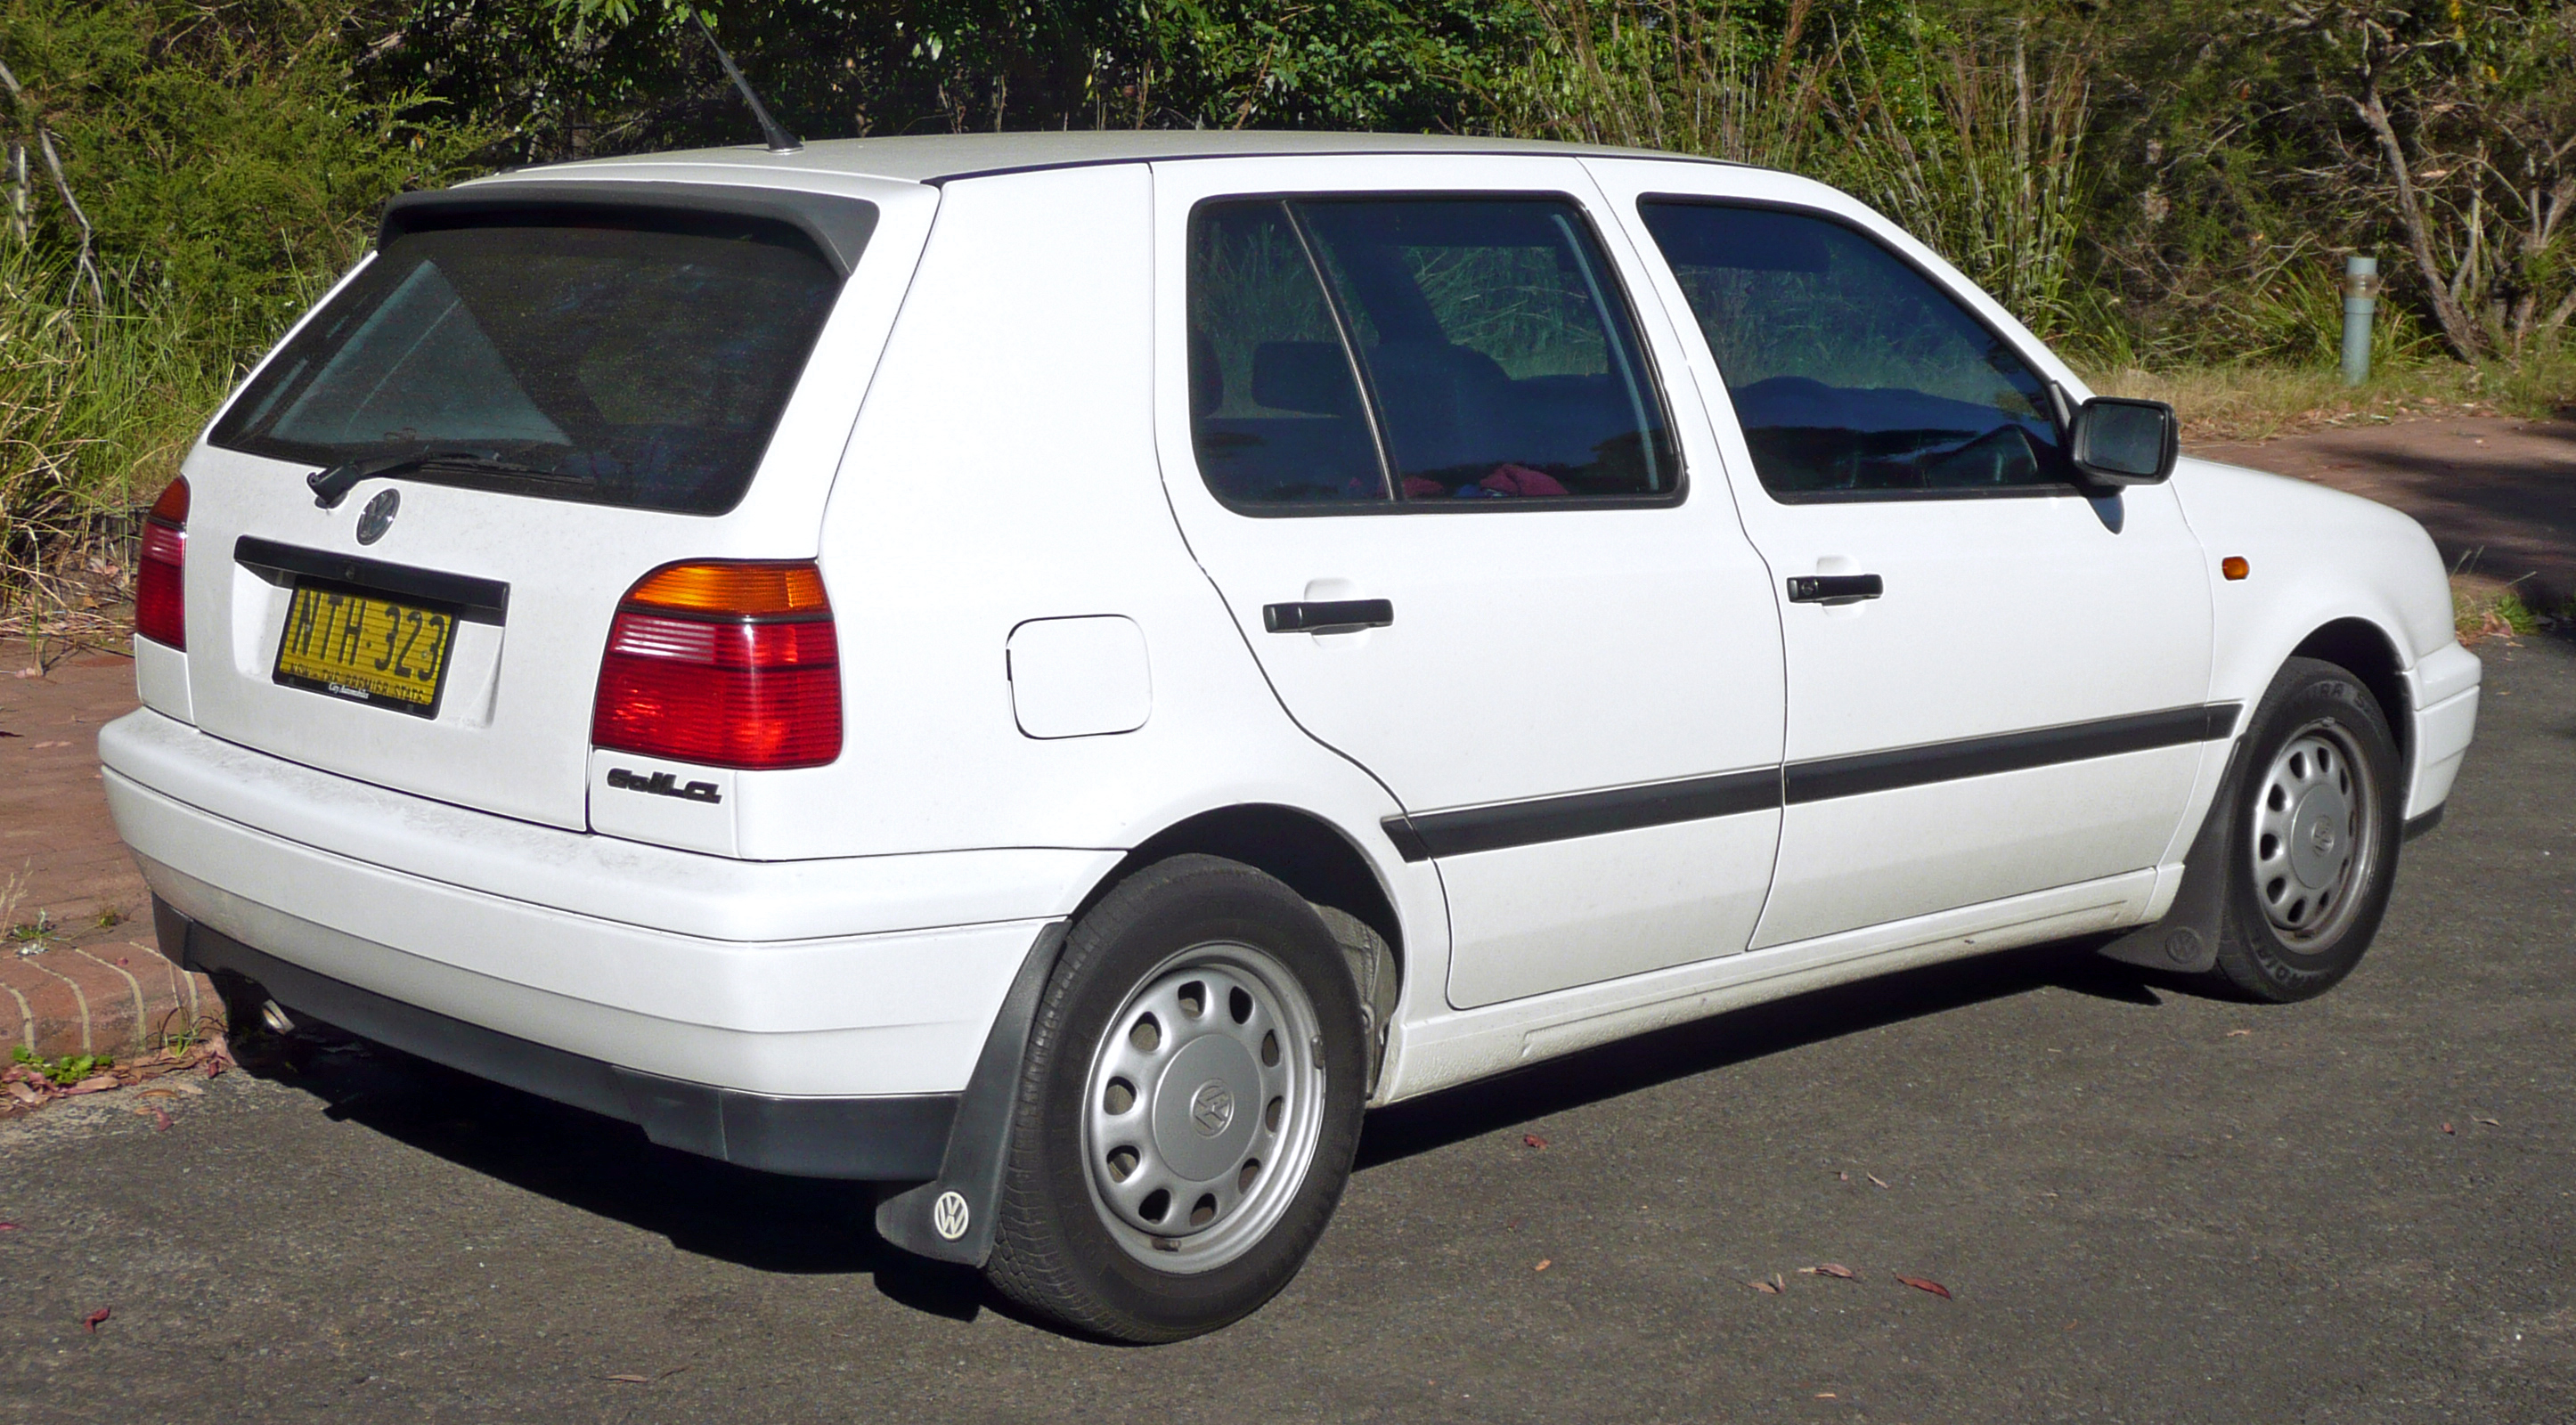 Used 1996 Volkswagen Golf Pricing & Features | Edmunds